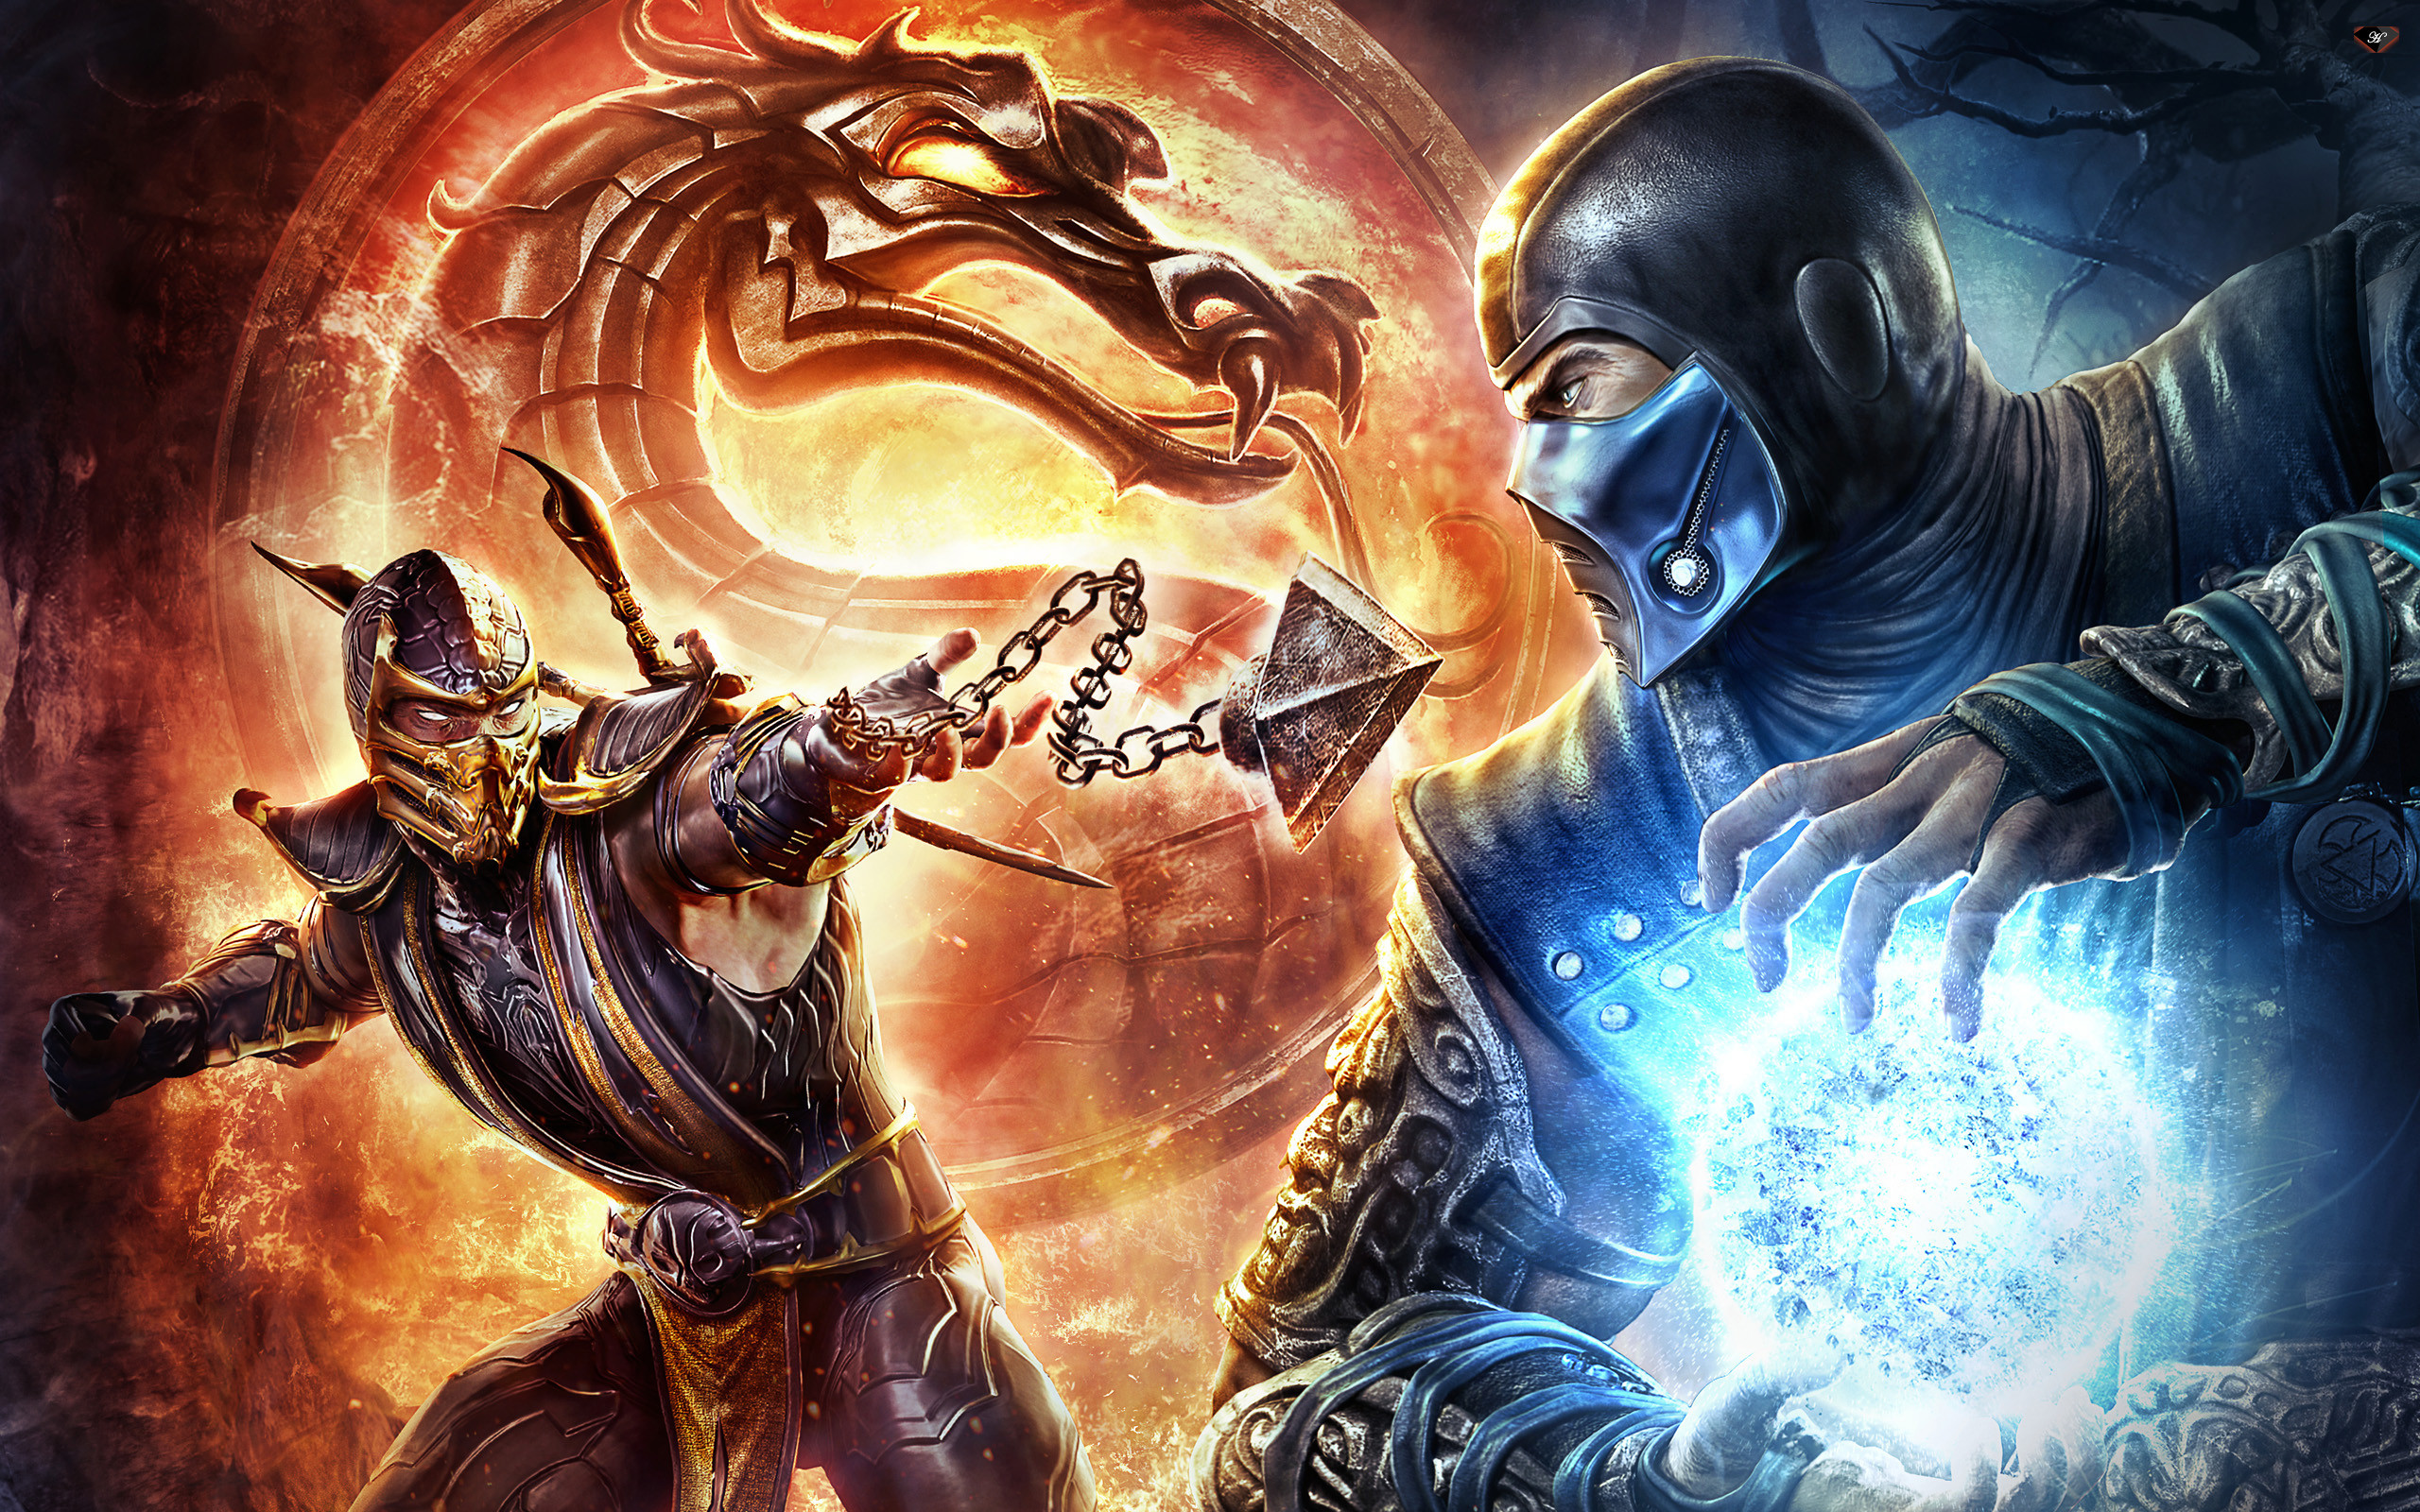 2560x1600 HD Wallpaper | Background Image ID:271571.  Video Game Mortal  Kombat